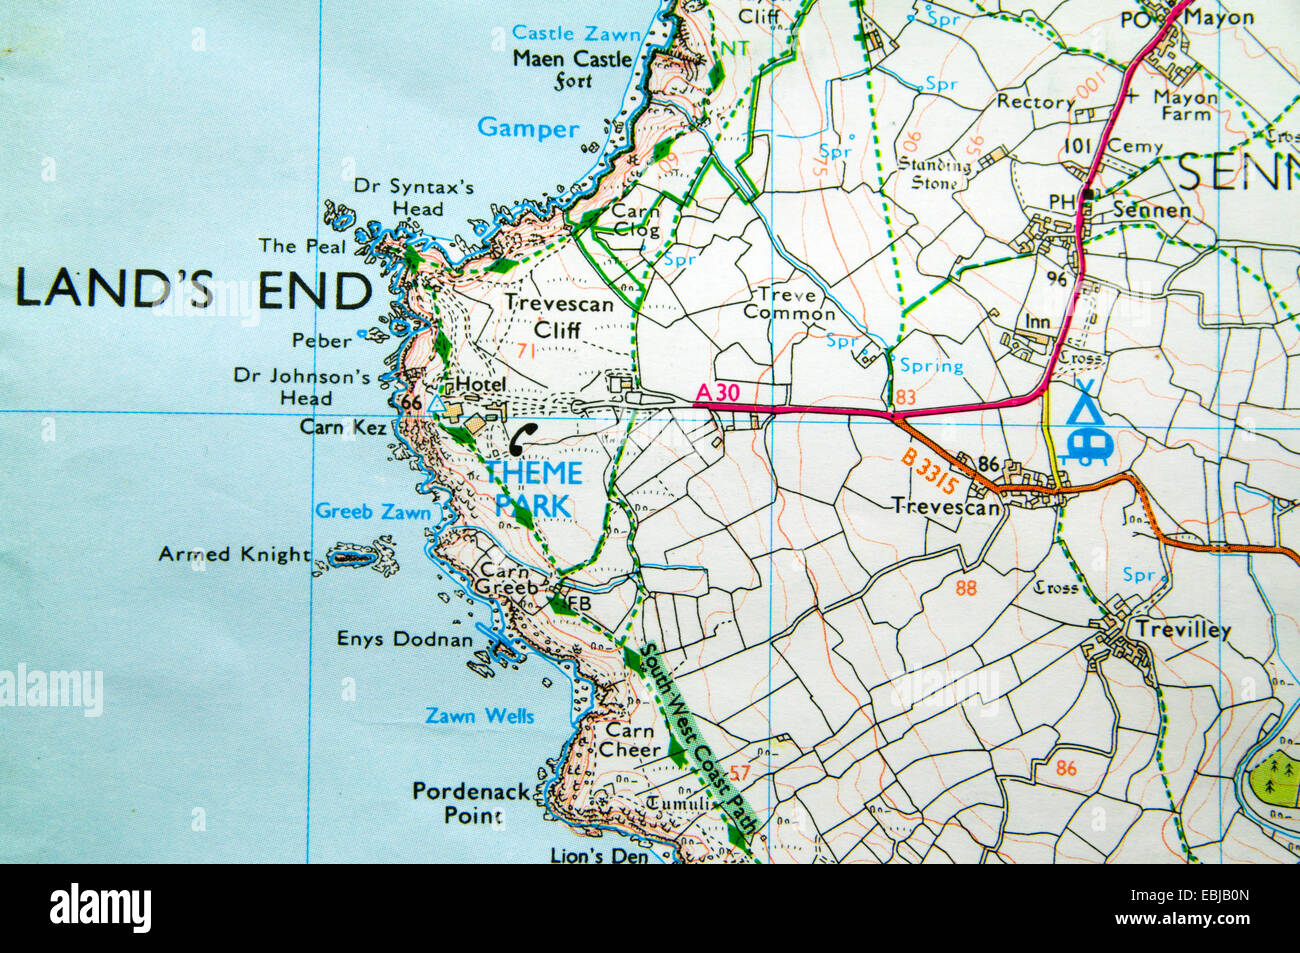 Ordnance Survey Map Of Lands End Cornwall England Stock Photo